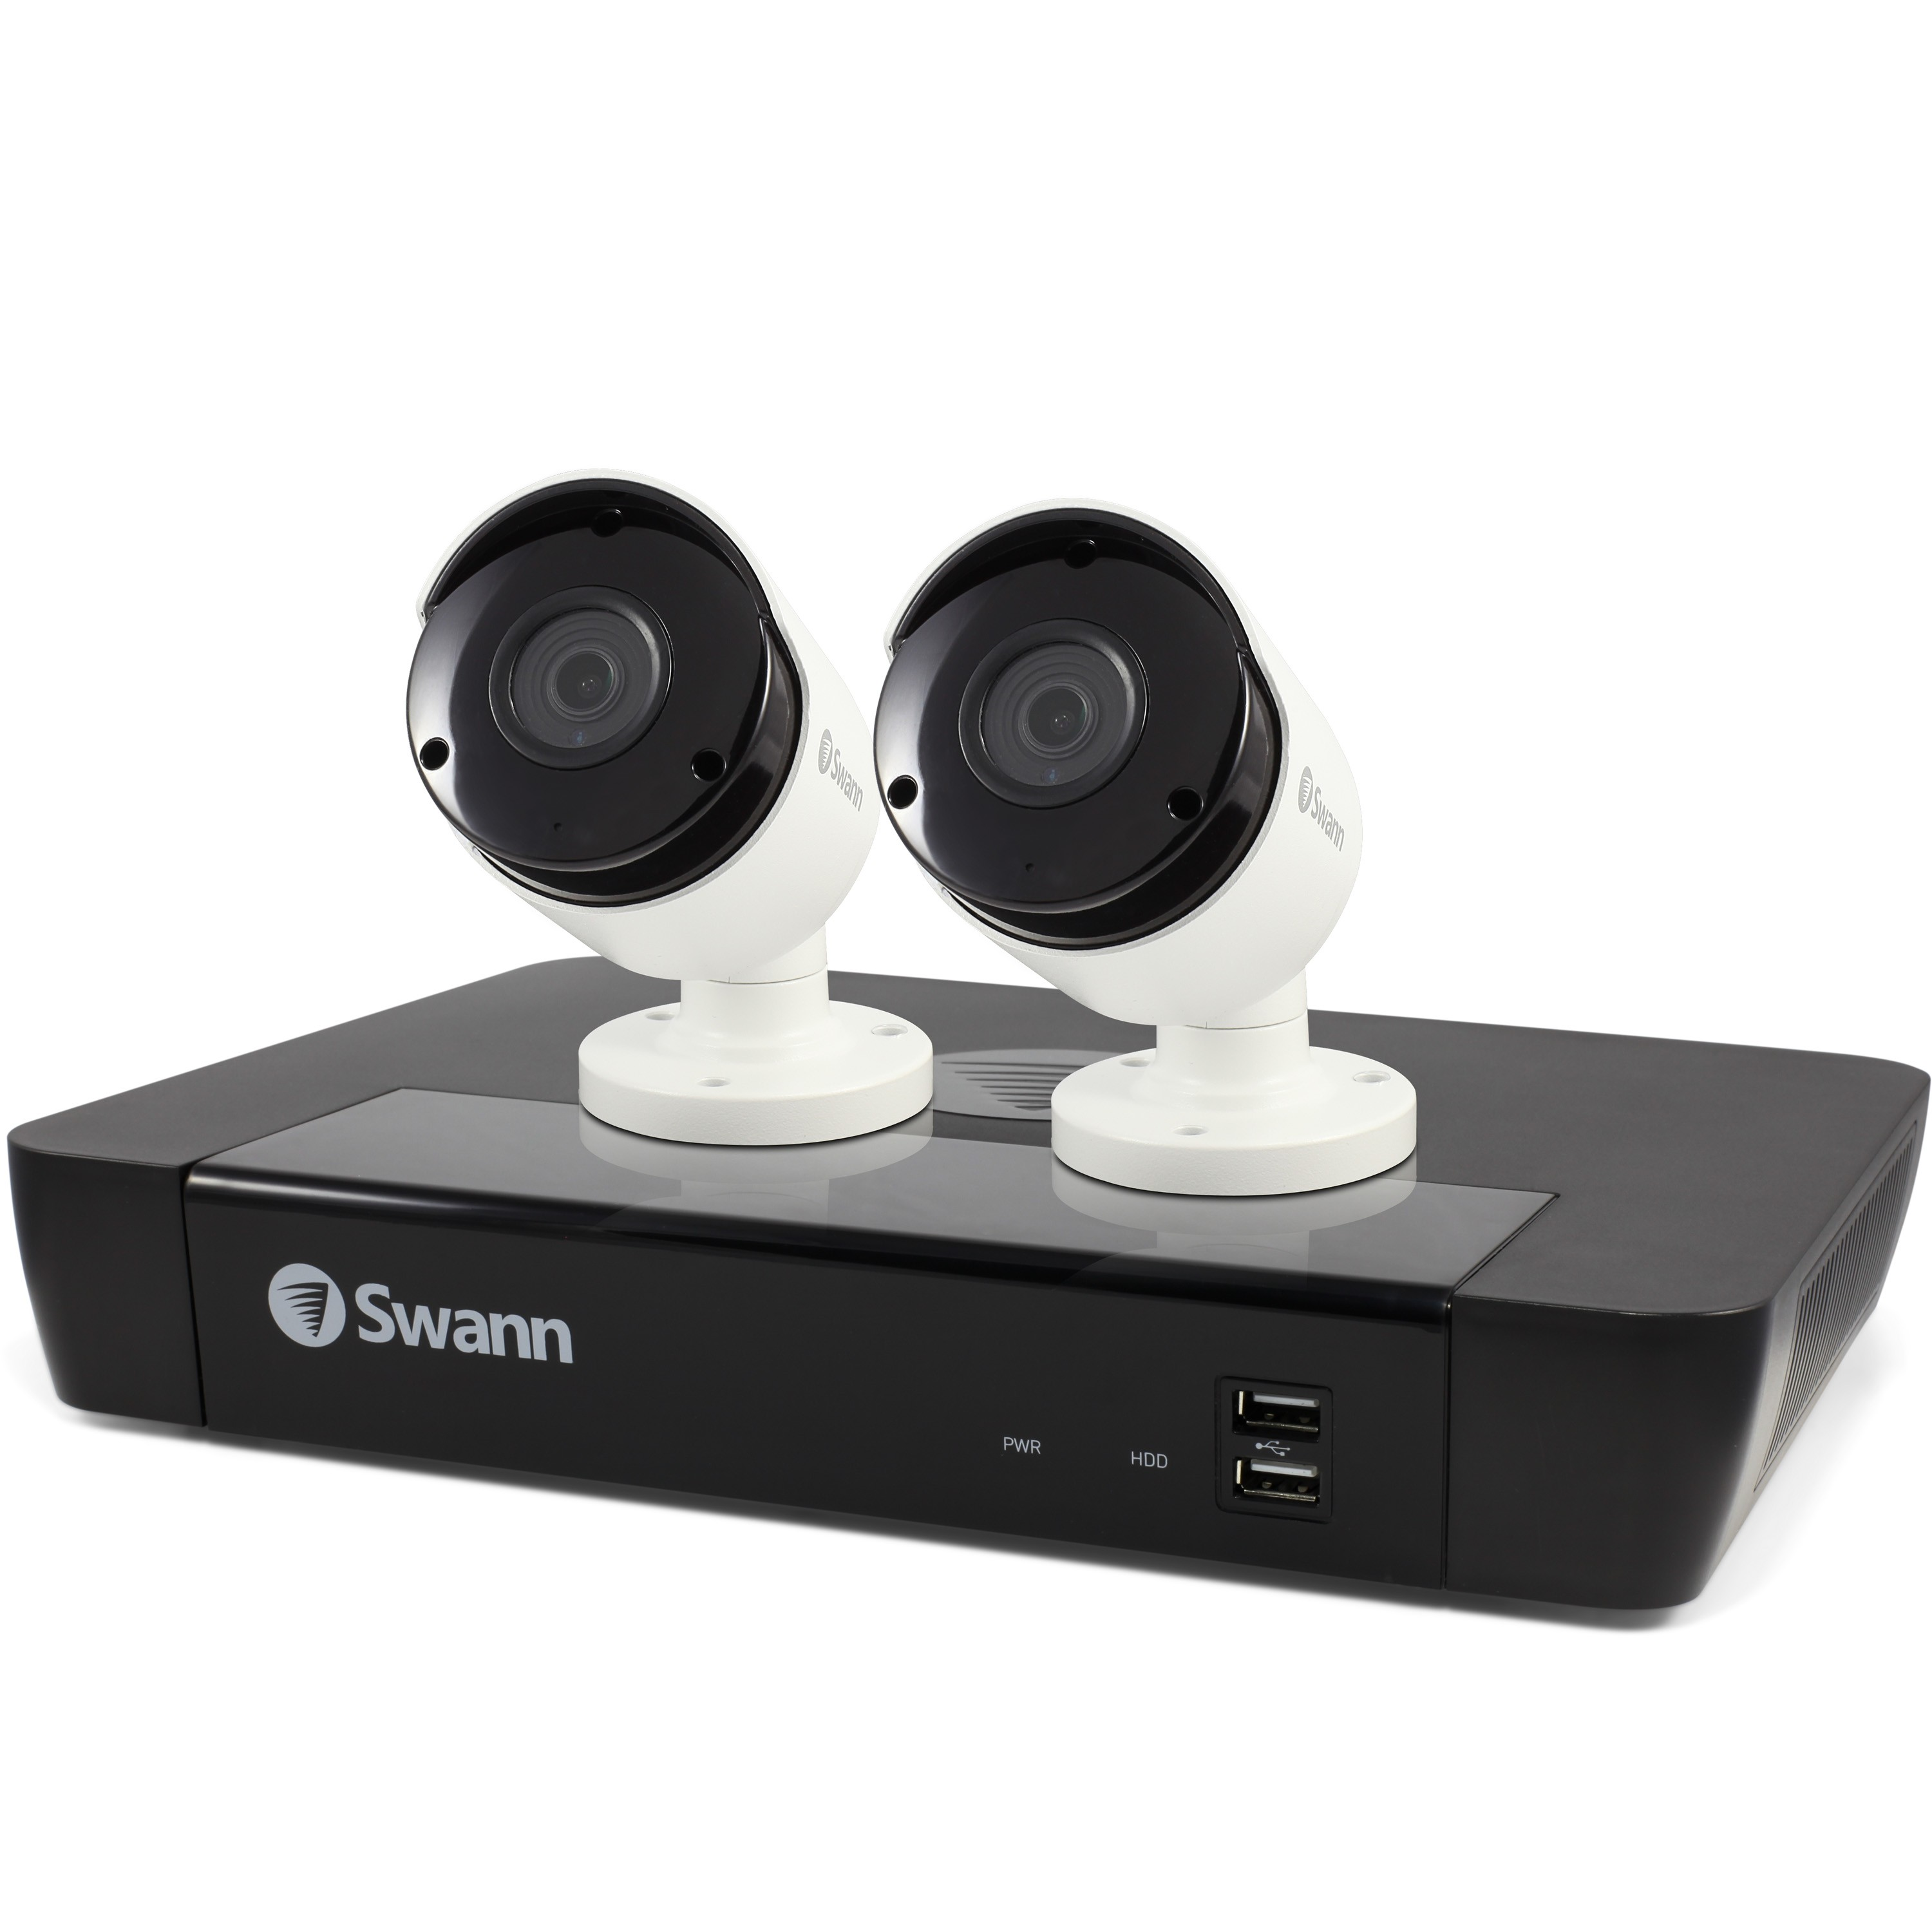 SWNVK-474502 Swann 4 Channel Security System: 5MP Super HD NVR-7450 with 1TB HDD & 2 x 5MP NHD-855 Bullet Cameras -